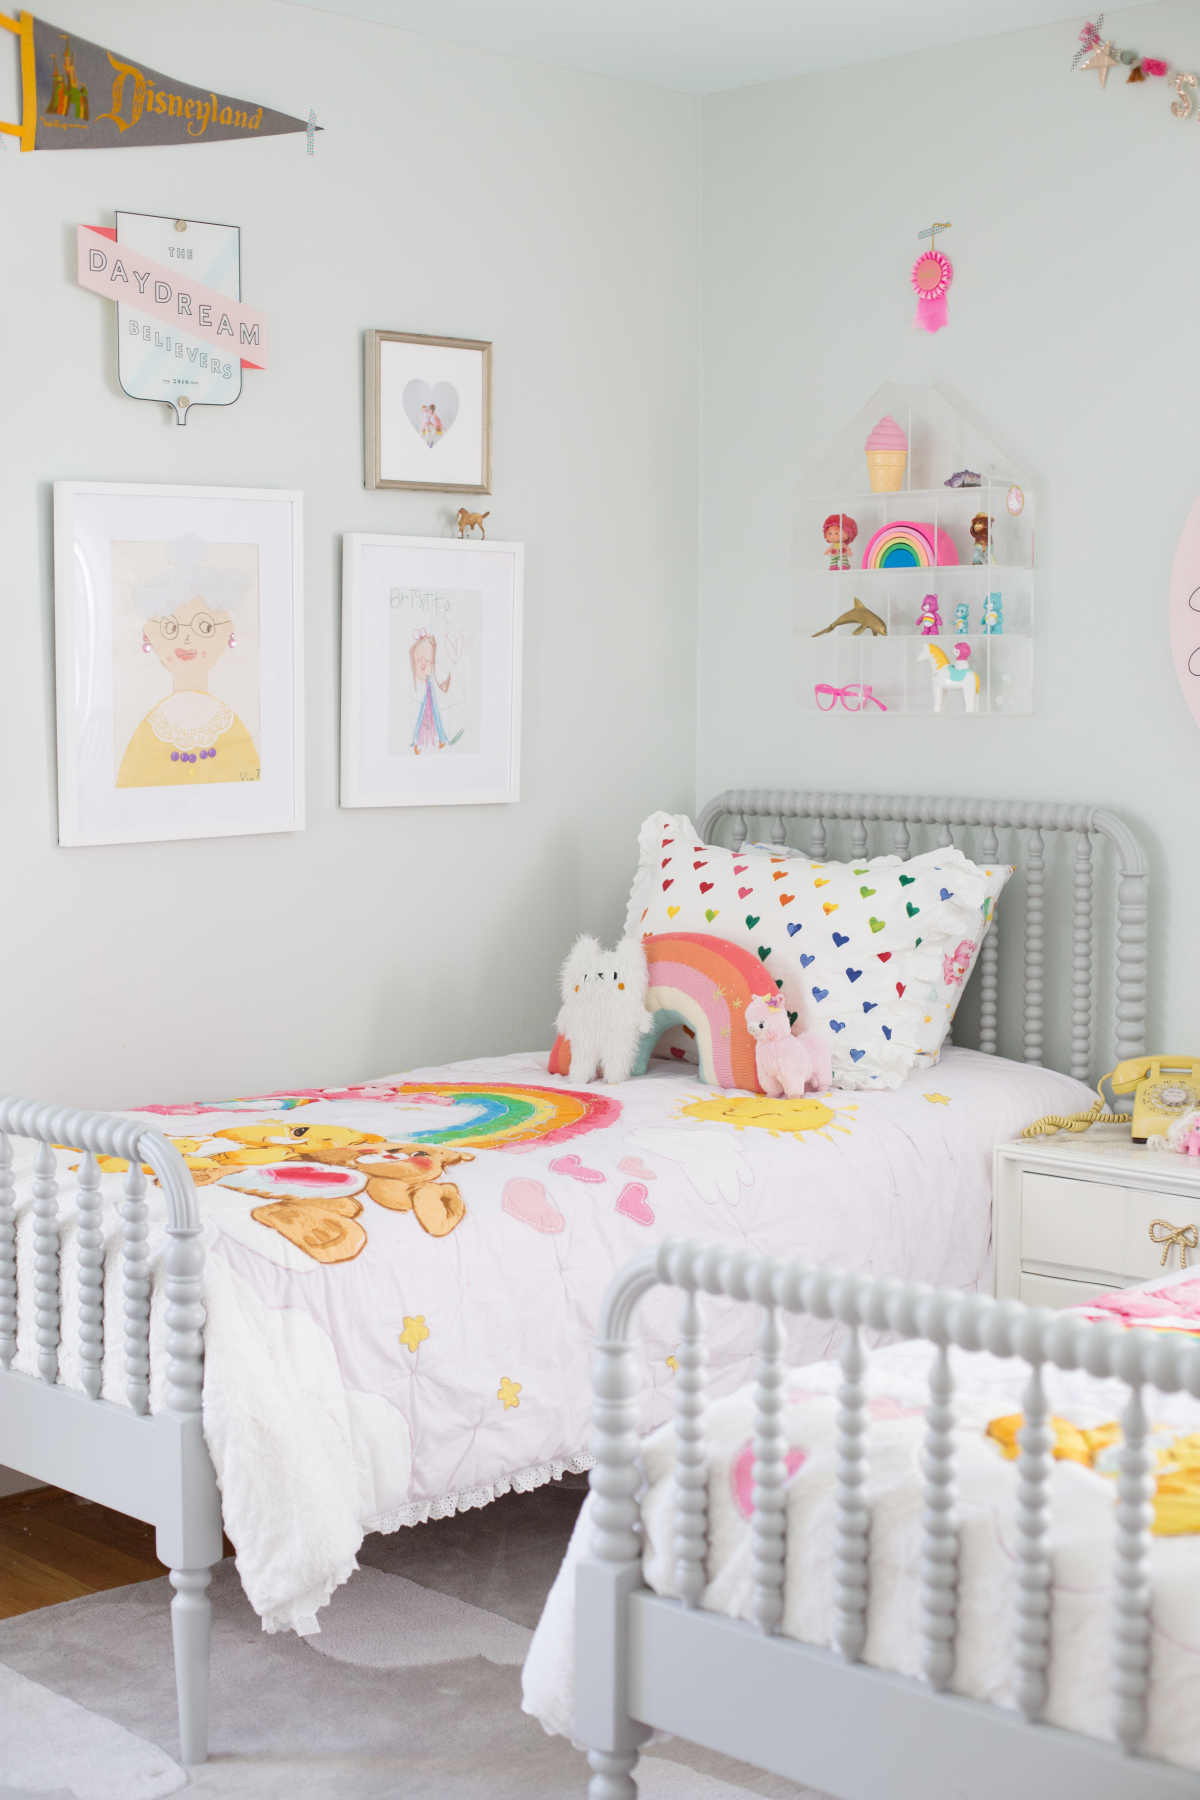 Shared room ideas for three girls lay baby lay shared sister room ideas sisterspd